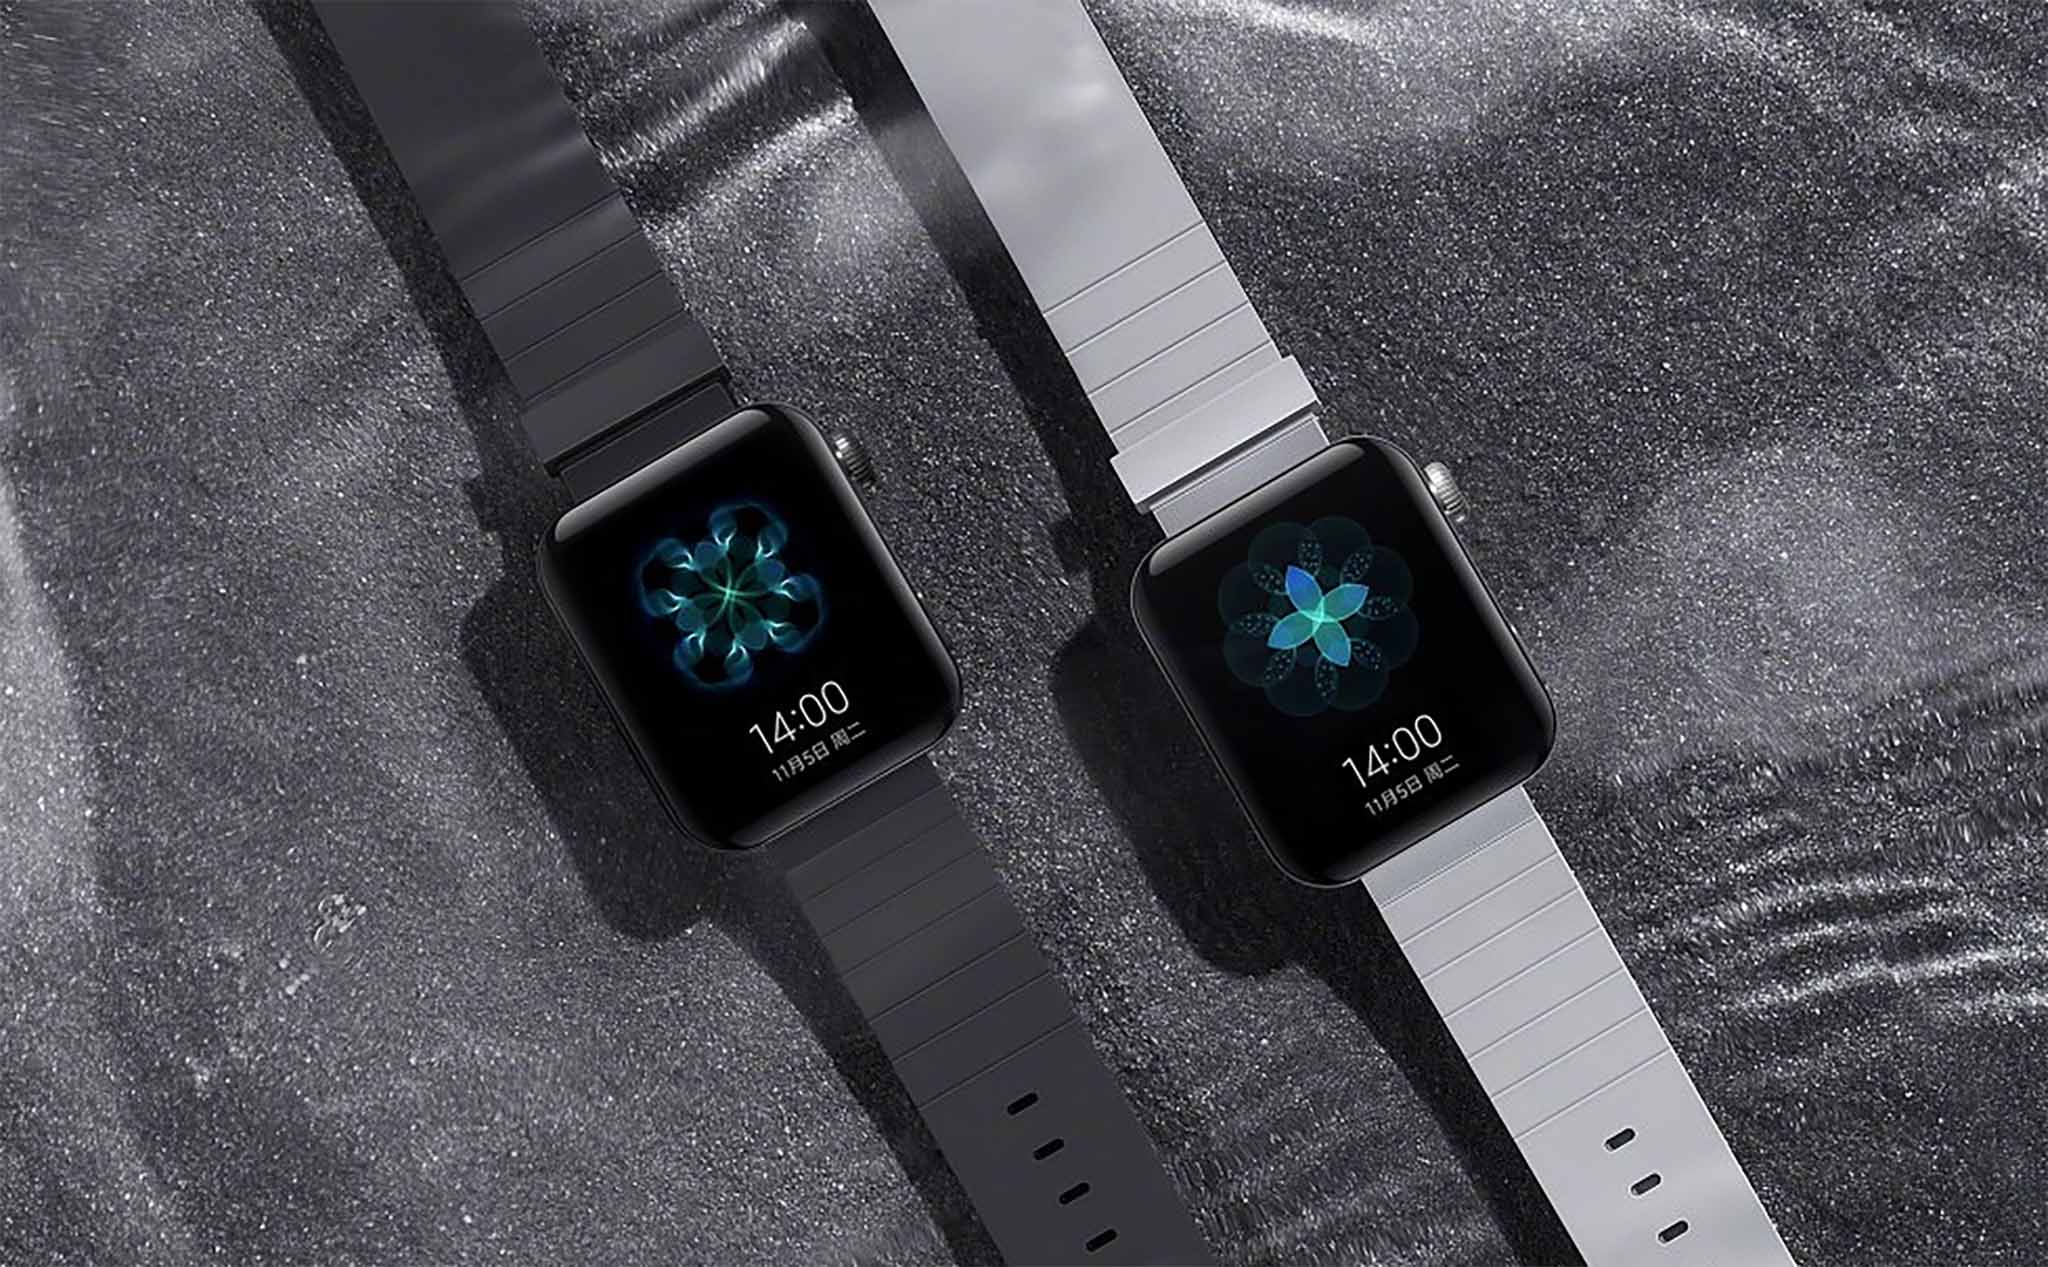 This is a smartwatch running Xiaomi's MIUI for Watch, which will be released on November 5 with Mi Note 10